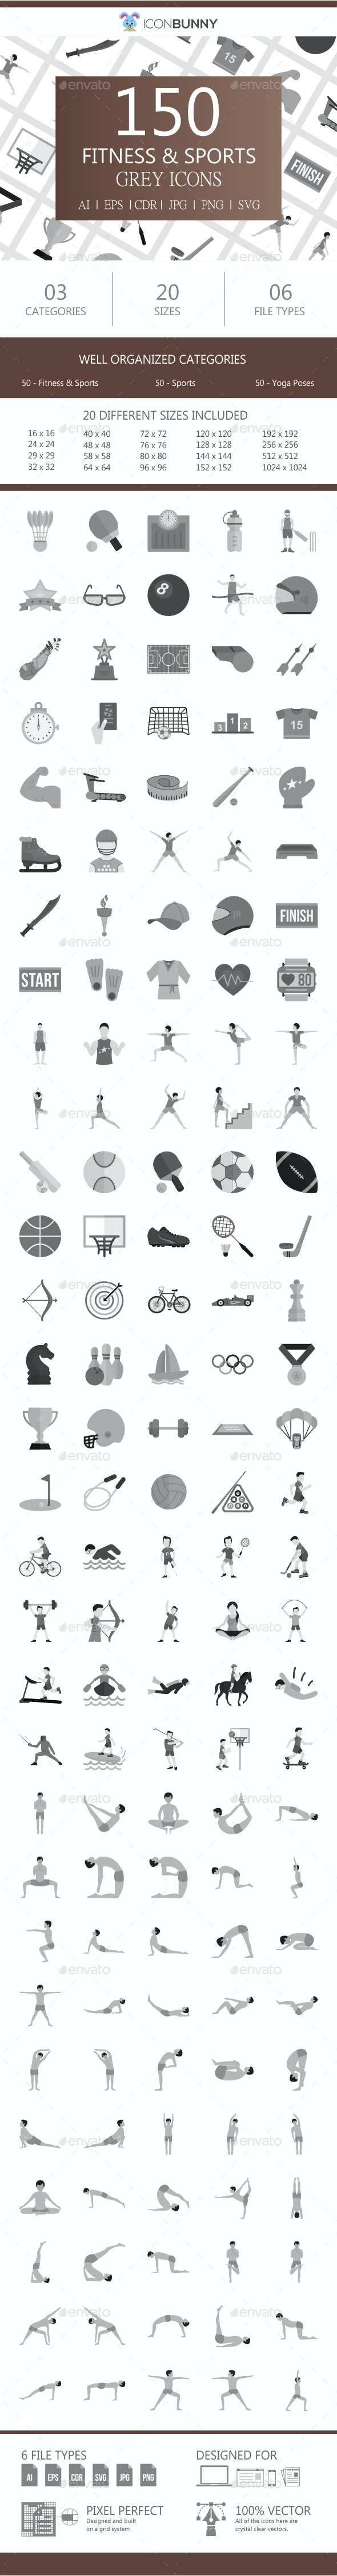 150 Fitness & Sports Flat Greyscale Icons - Icons